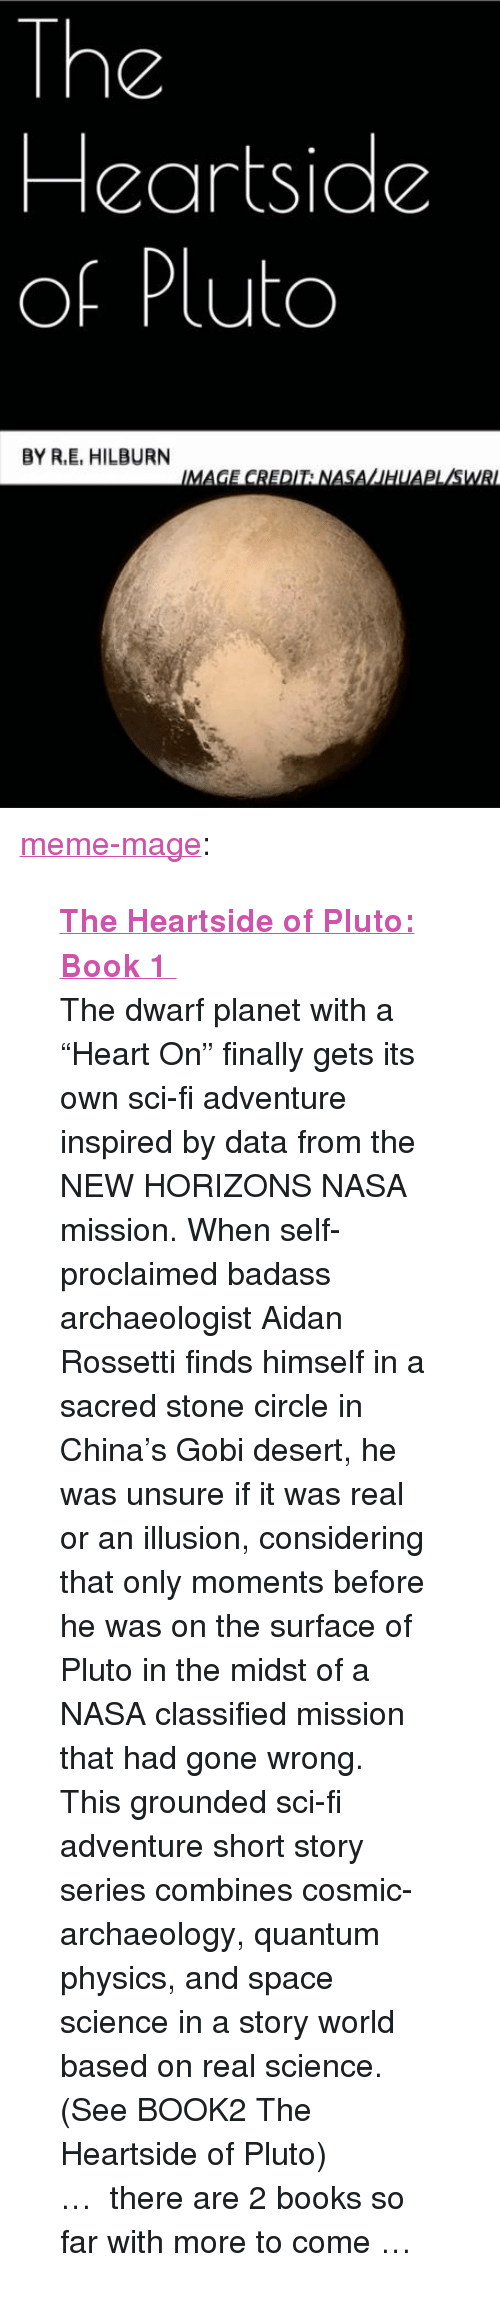 """Gobie: The  Heartside  of Pluto  BY R.E, HILBURN <p><a class=""""tumblr_blog"""" href=""""http://meme-mage.tumblr.com/post/140821143963"""">meme-mage</a>:</p> <blockquote> <p><b><a href=""""http://www.amazon.com/The-Heartside-Pluto-Book-1-ebook/dp/B0135ZMDWE"""">  The Heartside of Pluto: Book 1  </a></b><br/></p> <p>  The dwarf planet with a """"Heart On"""" finally gets its own sci-fi adventure inspired by data from the NEW HORIZONS NASA mission. When self-proclaimed badass archaeologist Aidan Rossetti finds himself in a sacred stone circle in China's Gobi desert, he was unsure if it was real or an illusion, considering that only moments before he was on the surface of Pluto in the midst of a NASA classified mission that had gone wrong. <br/>This grounded sci-fi adventure short story series combines cosmic-archaeology, quantum physics, and space science in a story world based on real science. (See BOOK2 The Heartside of Pluto)   <br/></p> <p>…   there are 2 books so far with more to come …</p> </blockquote>"""